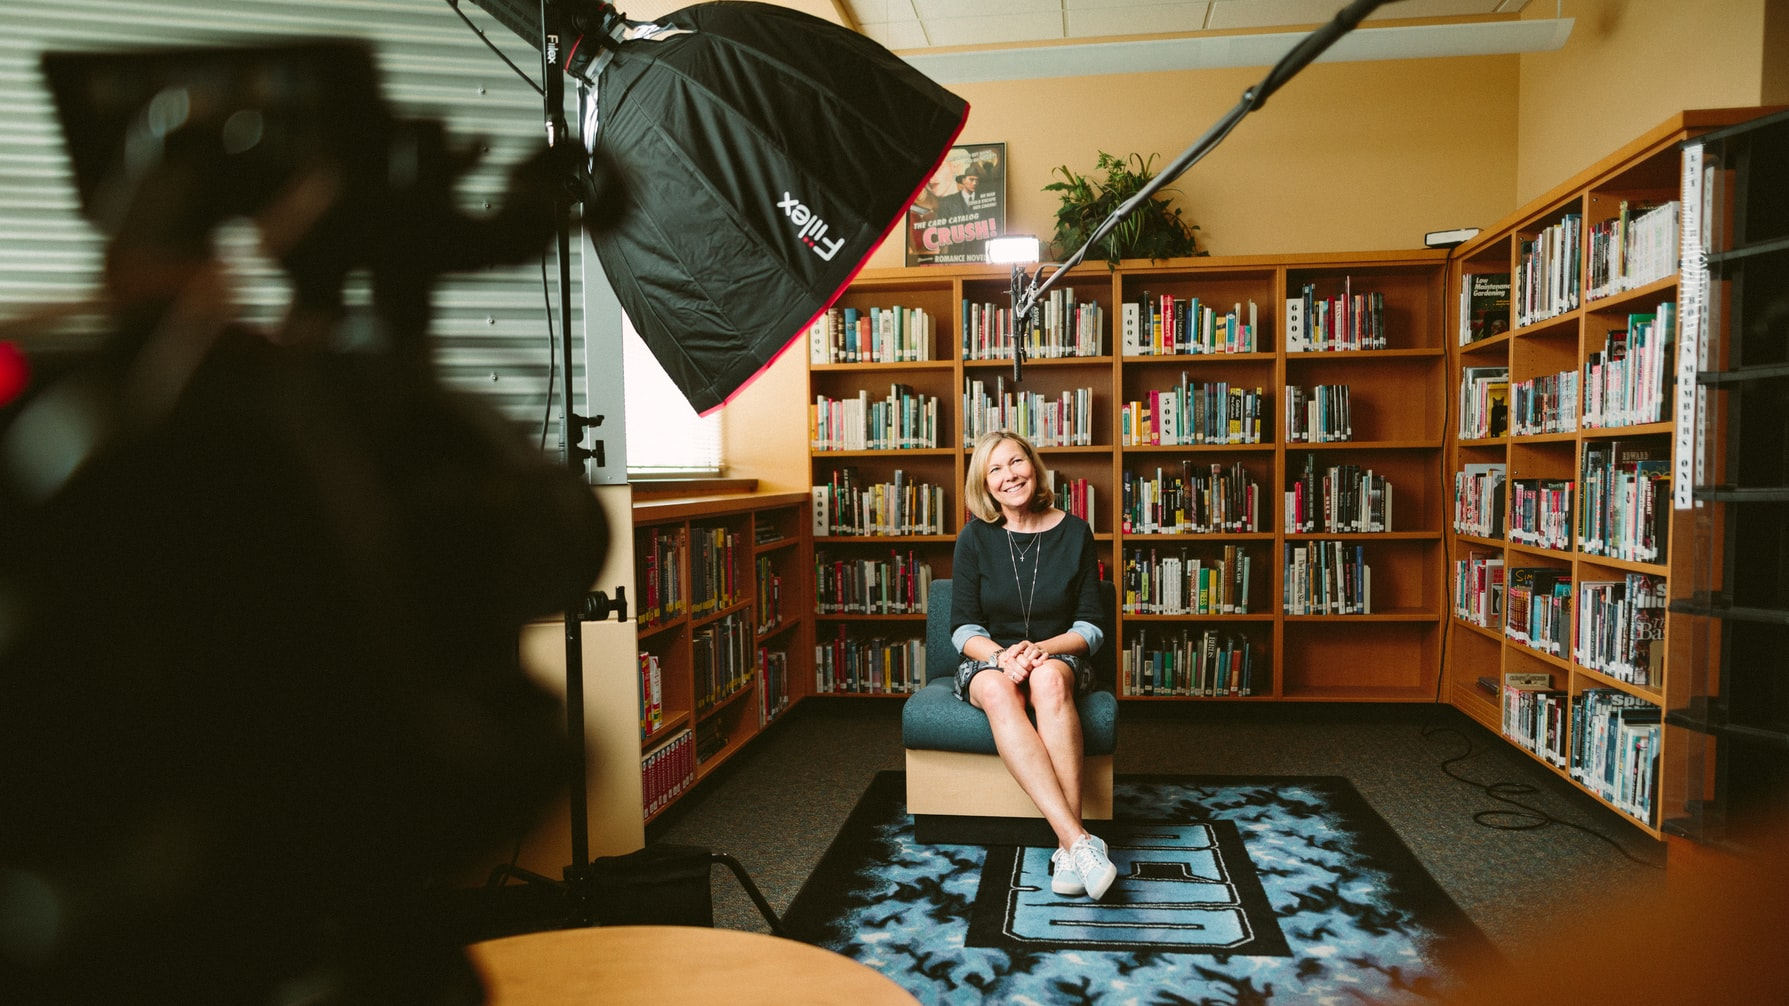 A snap shot from our film set while producing a documentary series for the Holocaust Center for Humanities. Here we are interviewing a local high school about their experience with some of the Center's teaching materials.